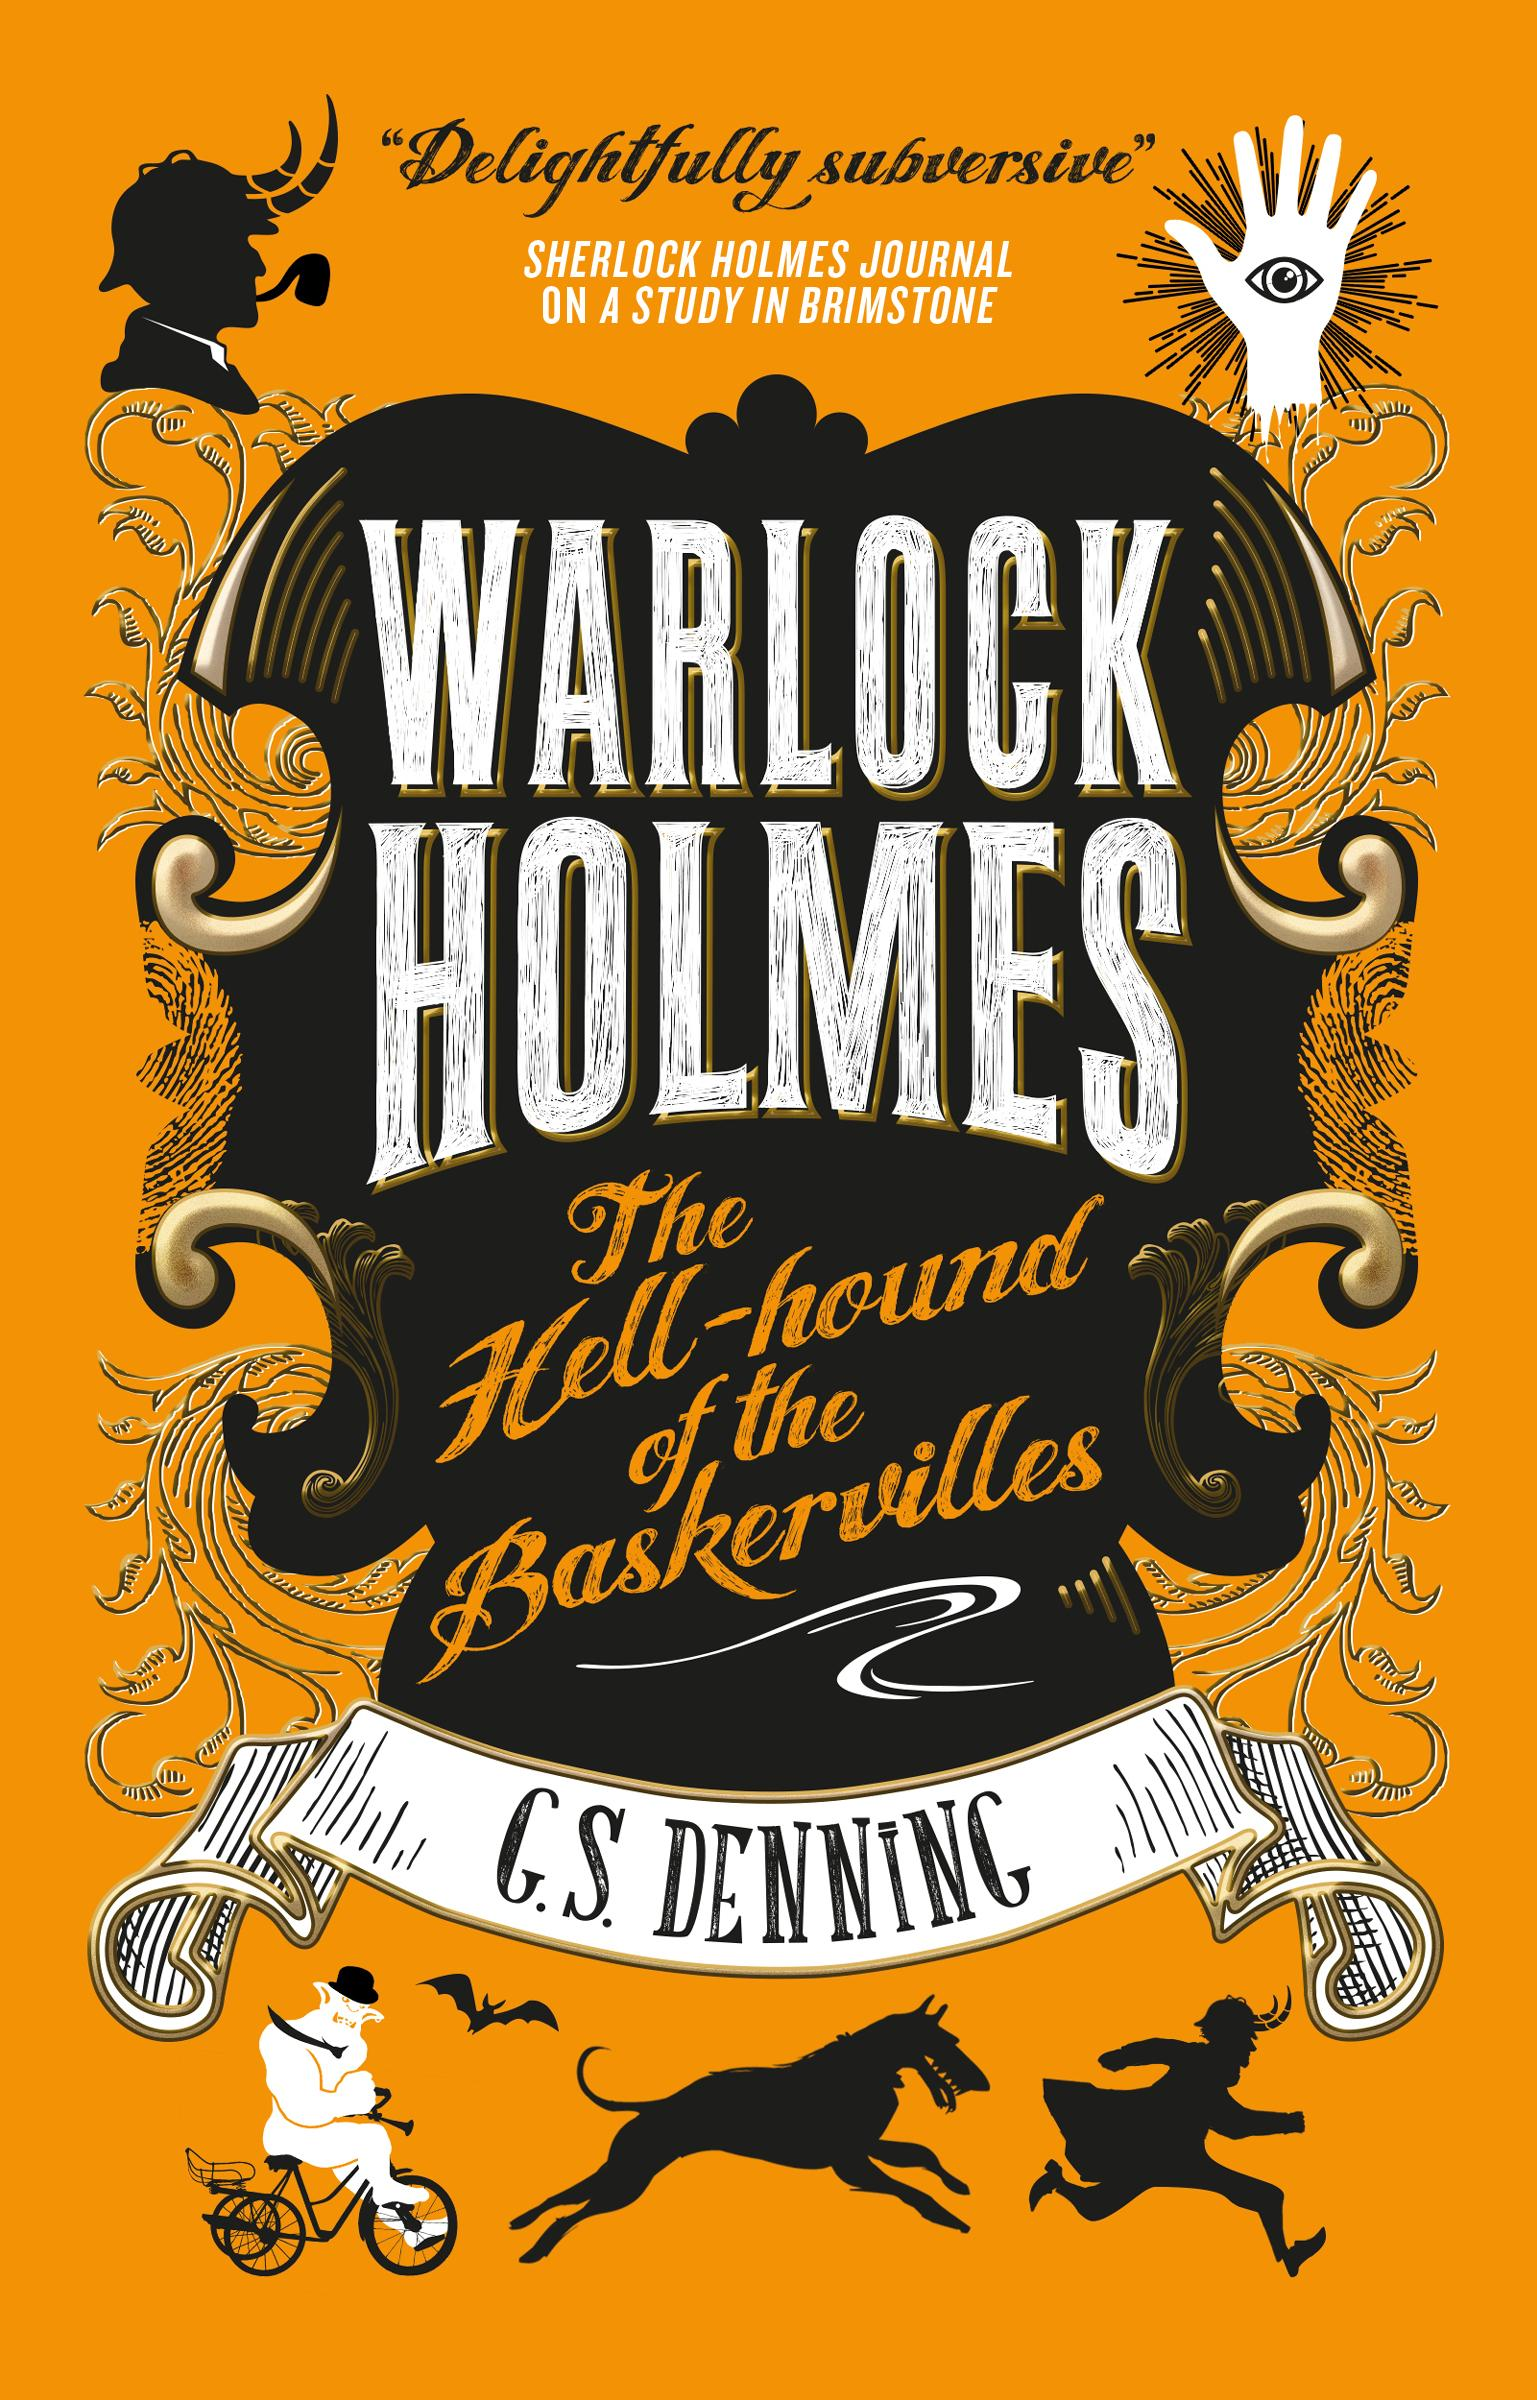 Warlock Holmes - The Hell-Hound of the Baskervilles the hound of the baskervilles